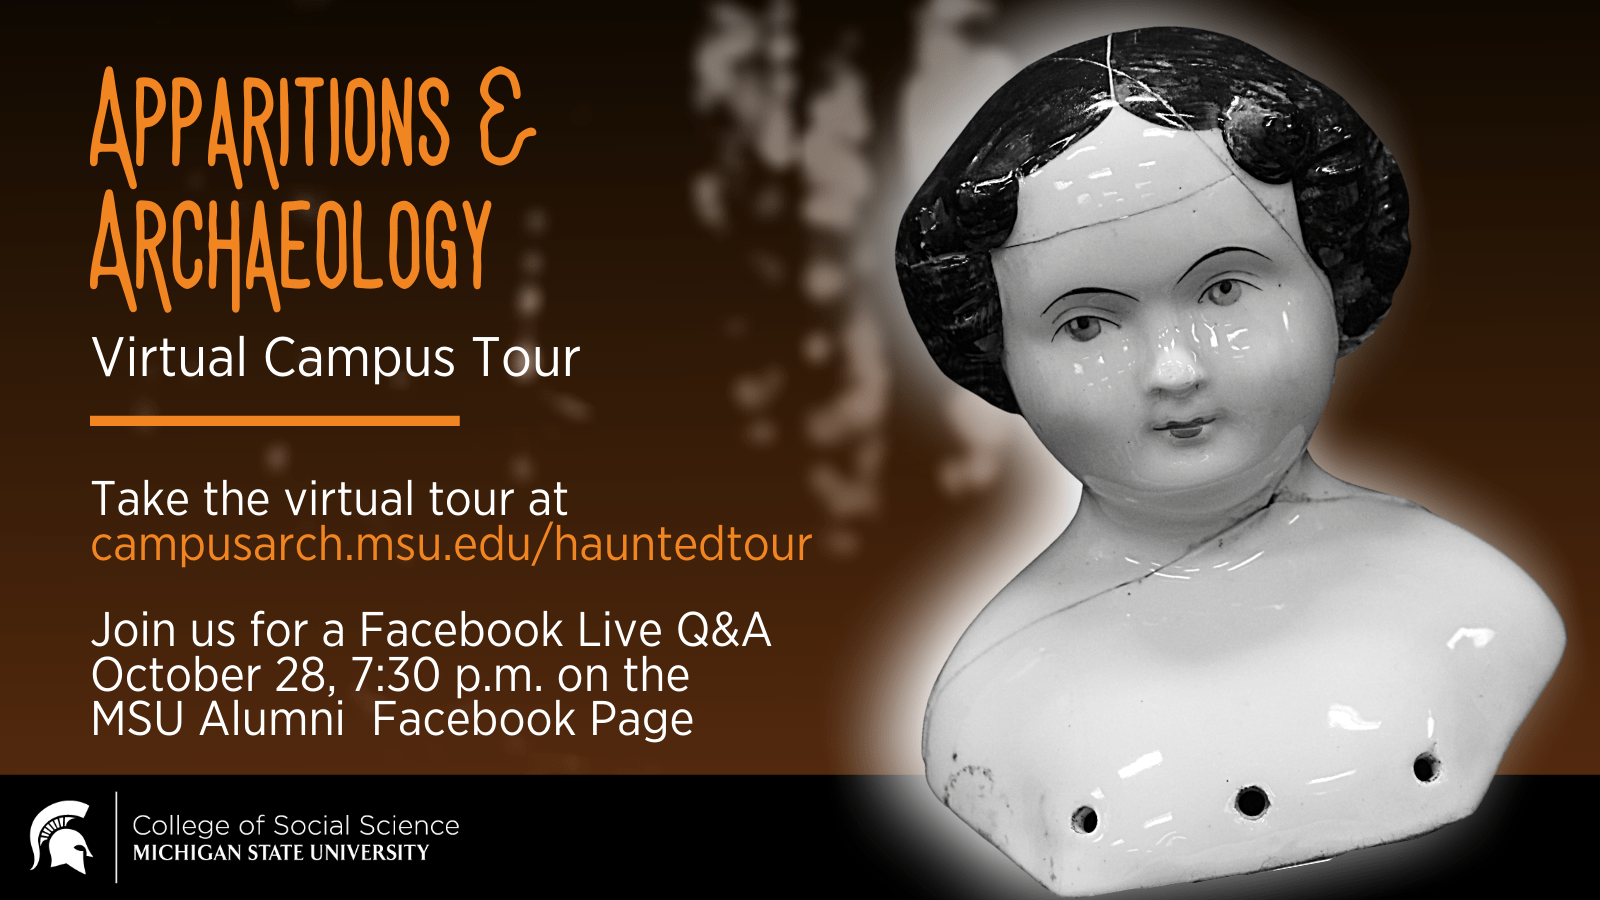 Flyer for the Apparitions and Archaeology tour